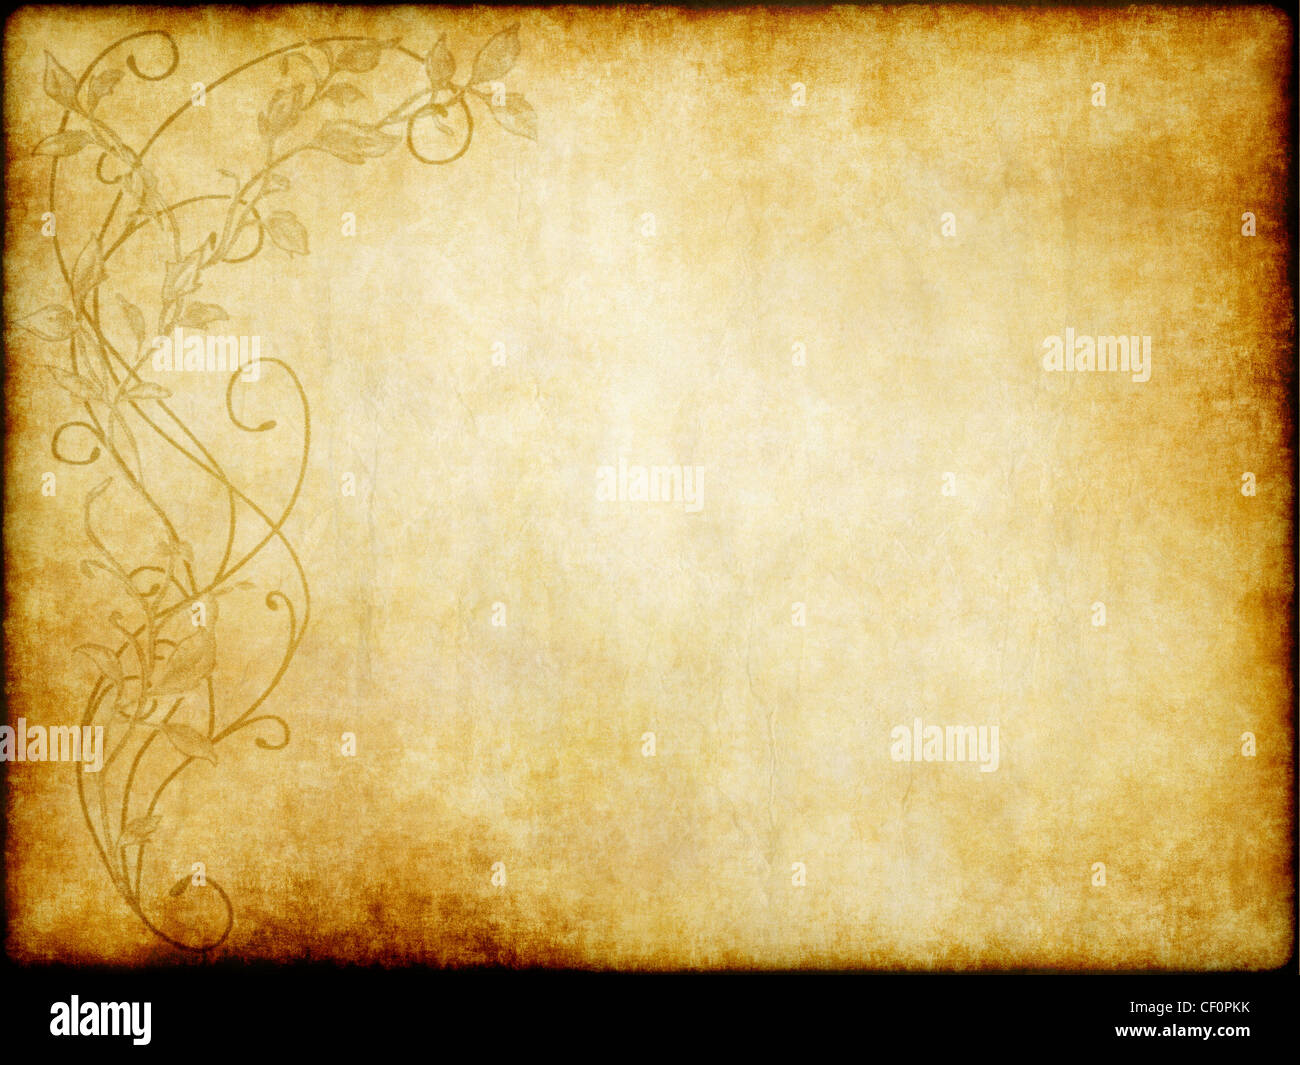 old vintage paper with floral design background texture - Stock Image